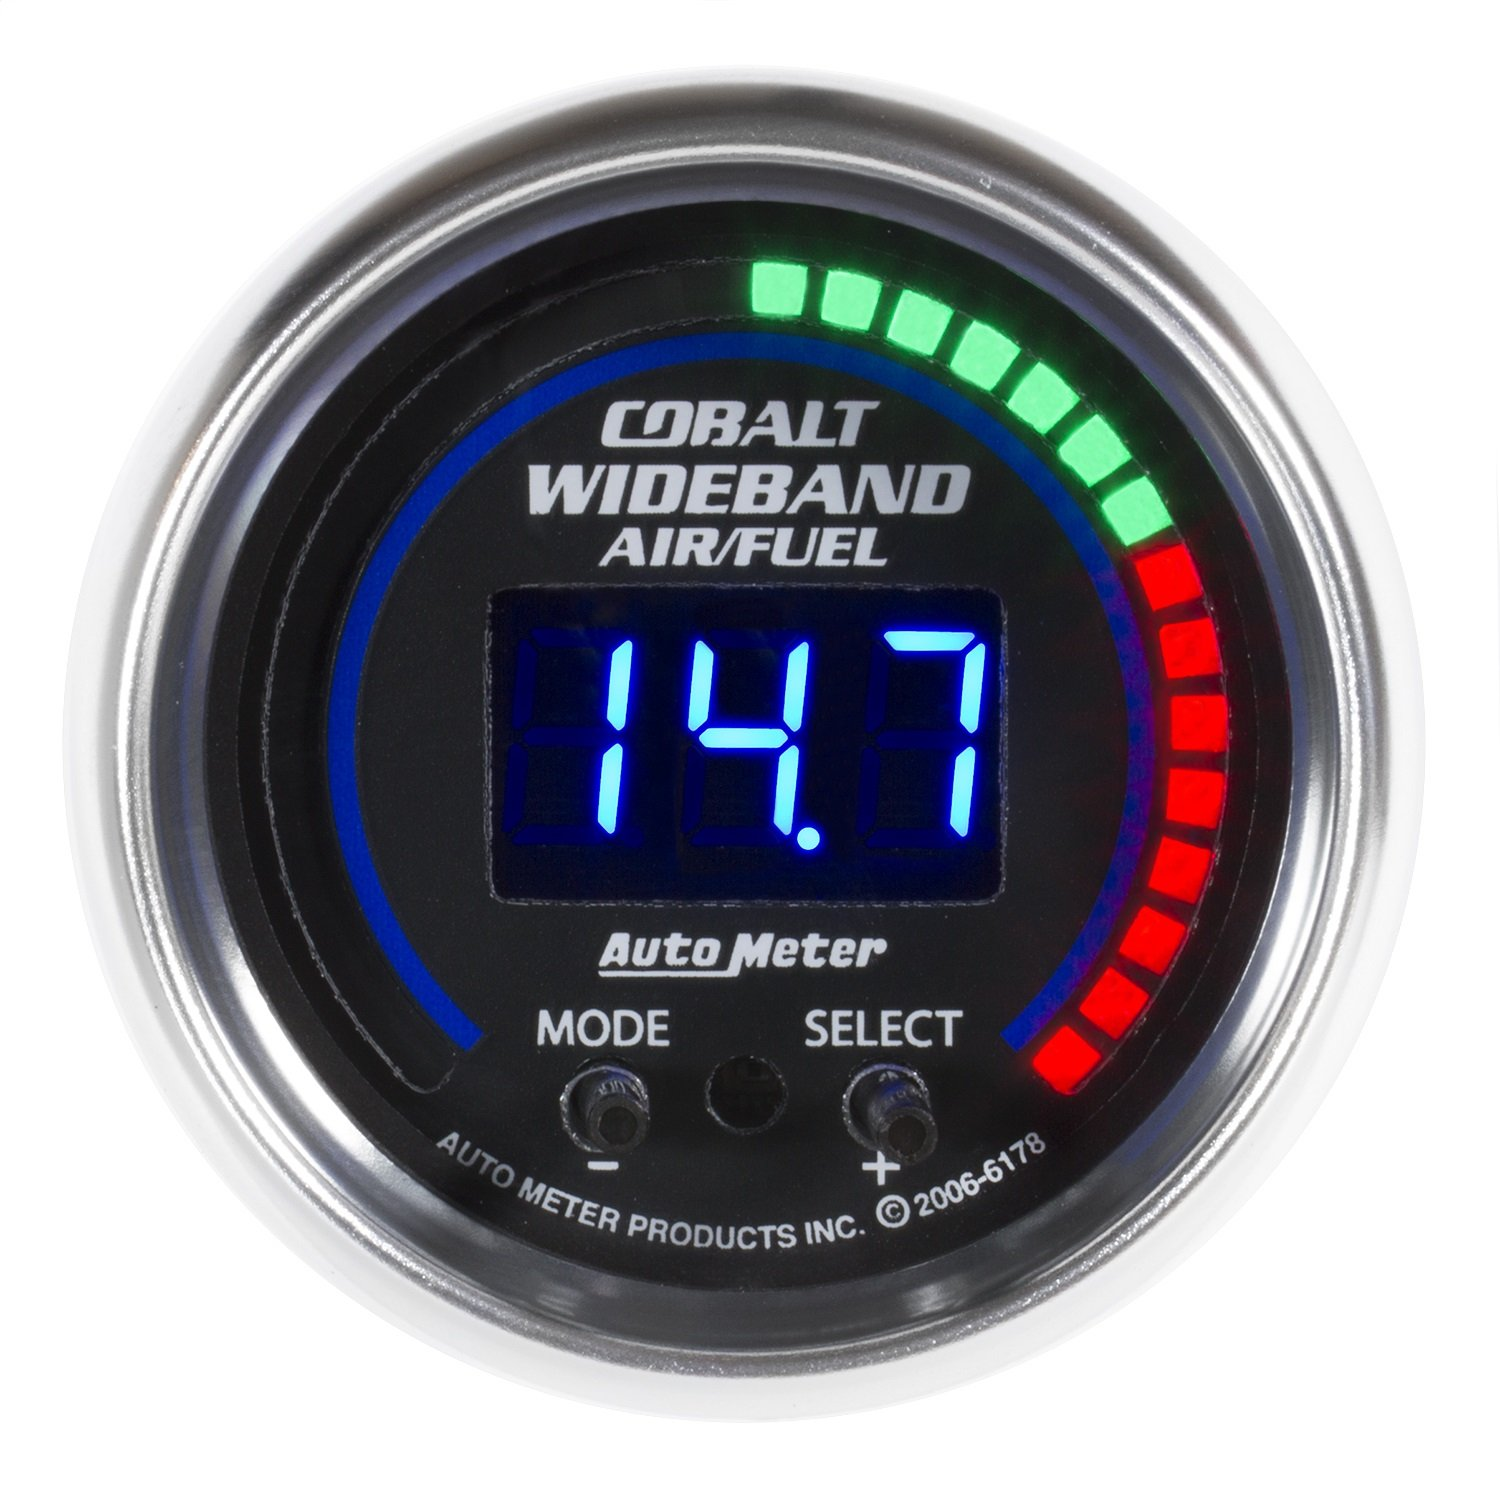 Auto Meter AutoMeter 6197 Gauge, Air/Fuel Ratio-Pro Plus, 2 1/16'', 10:1-20:1, Digital W/Peak & Warn, Cobalt